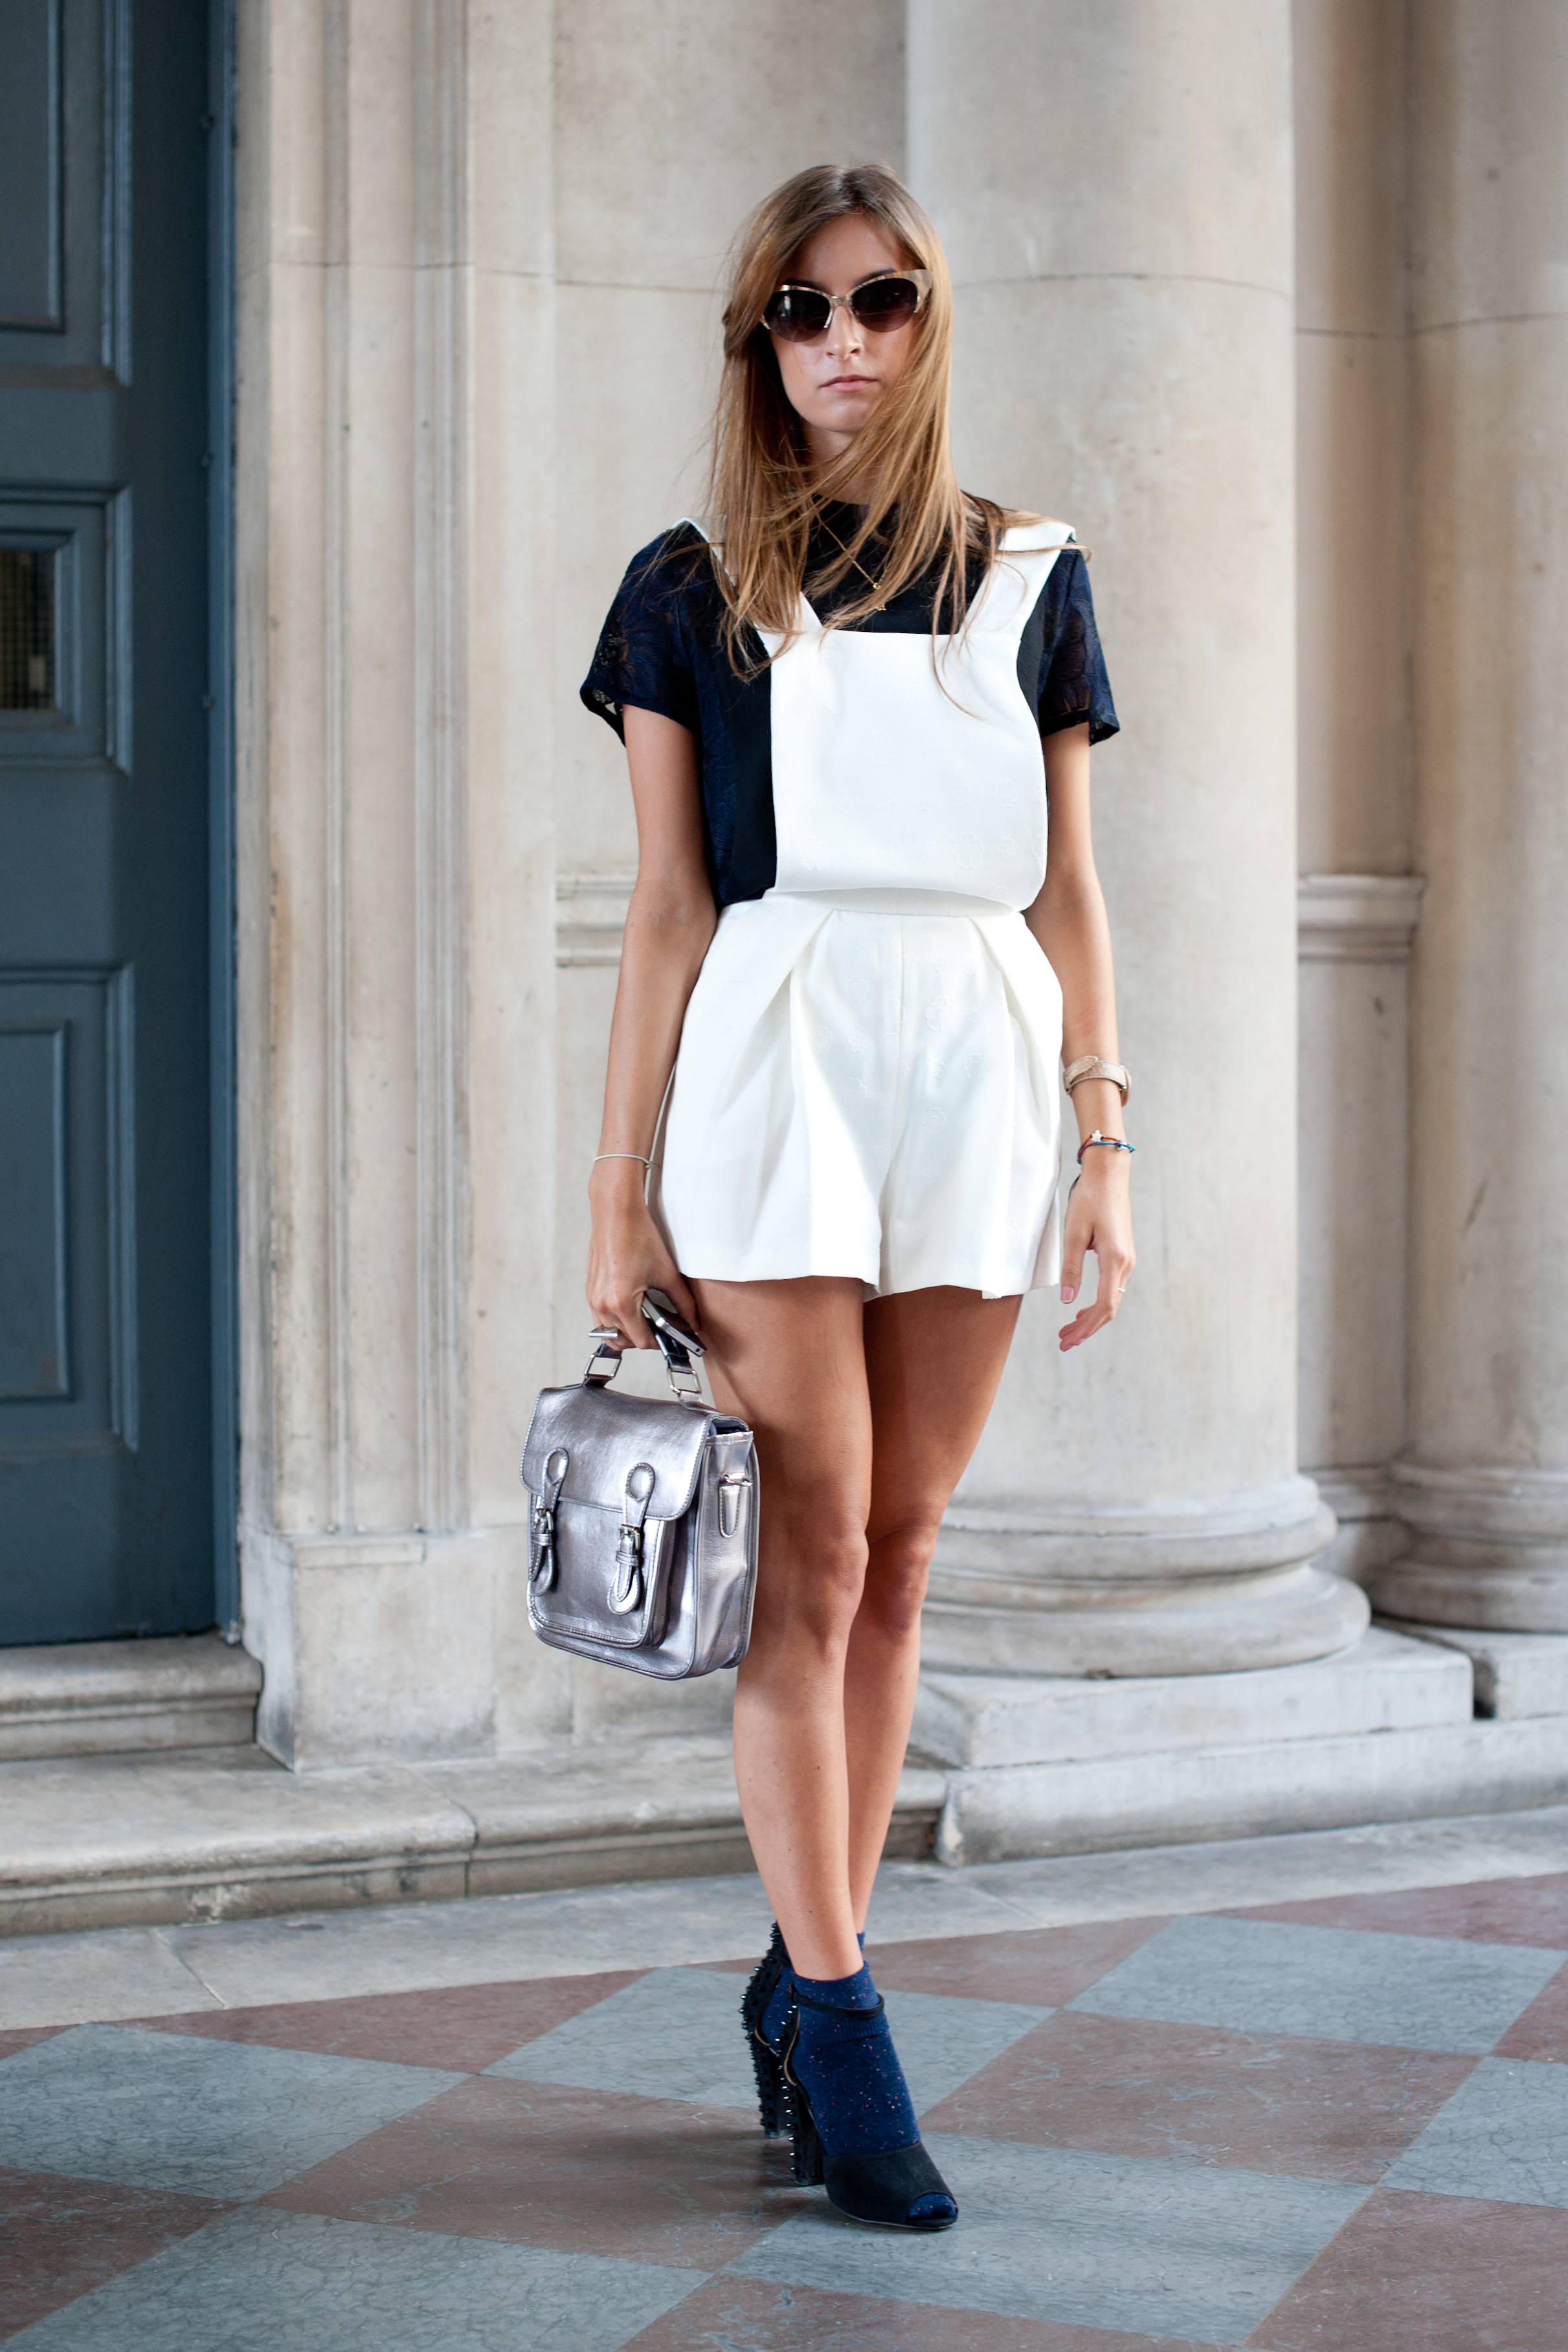 We're digging the funky throwback mashup of white Topshop overalls and a metallic silver Urban Outfitters bag here — it's '90s retro but totally accessible.